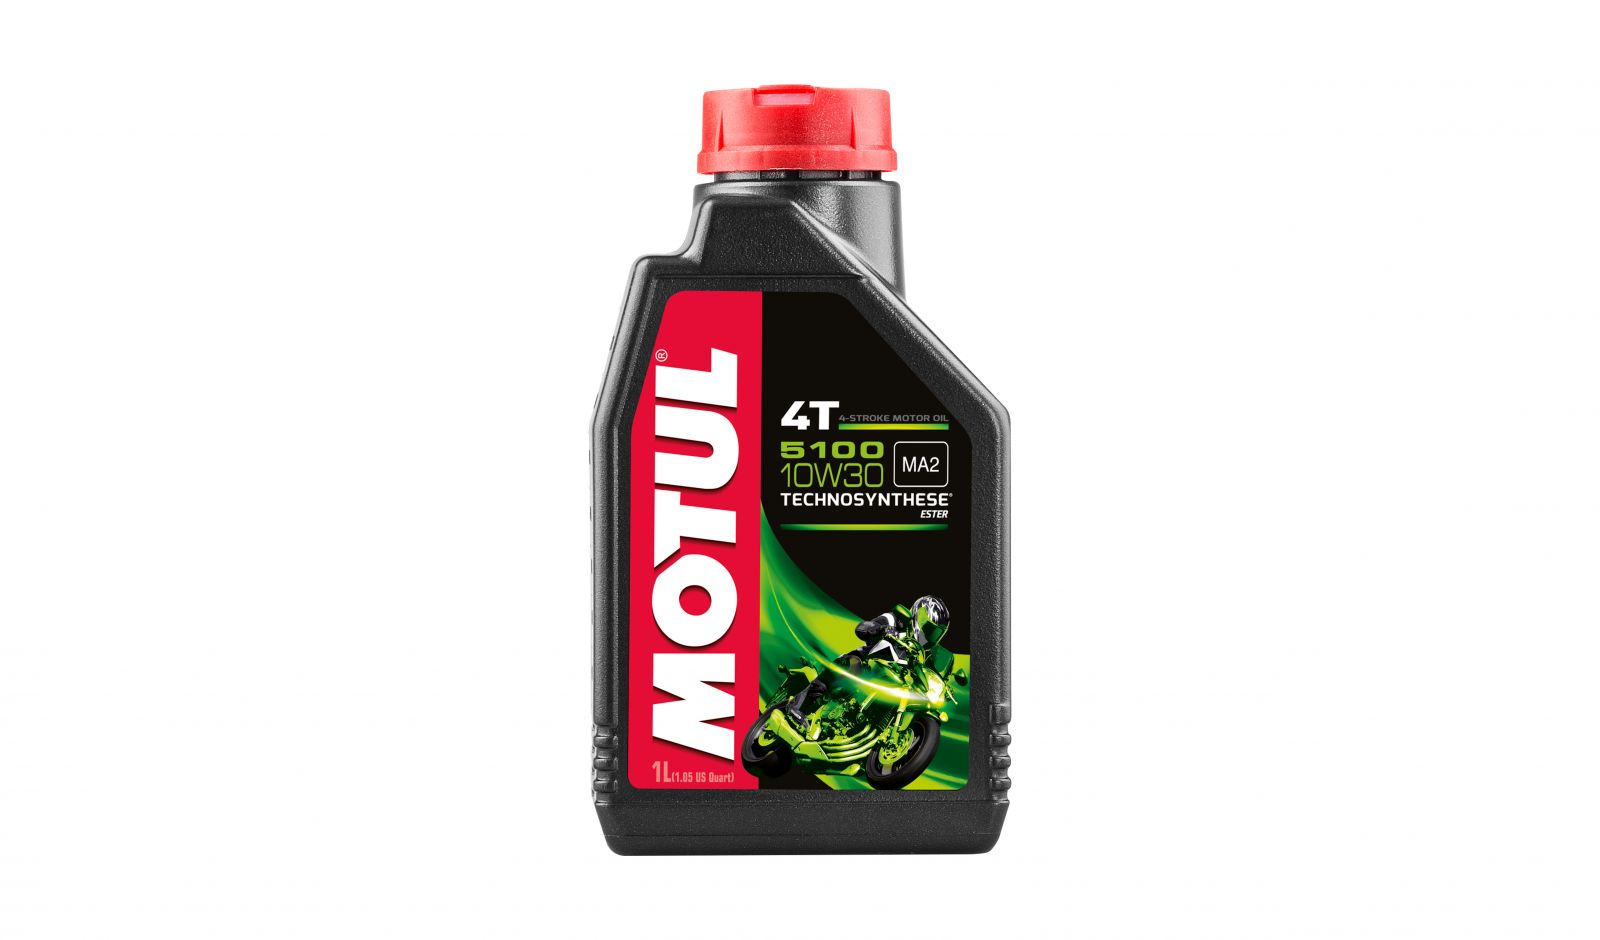 4 stroke engine oils - 670131M image